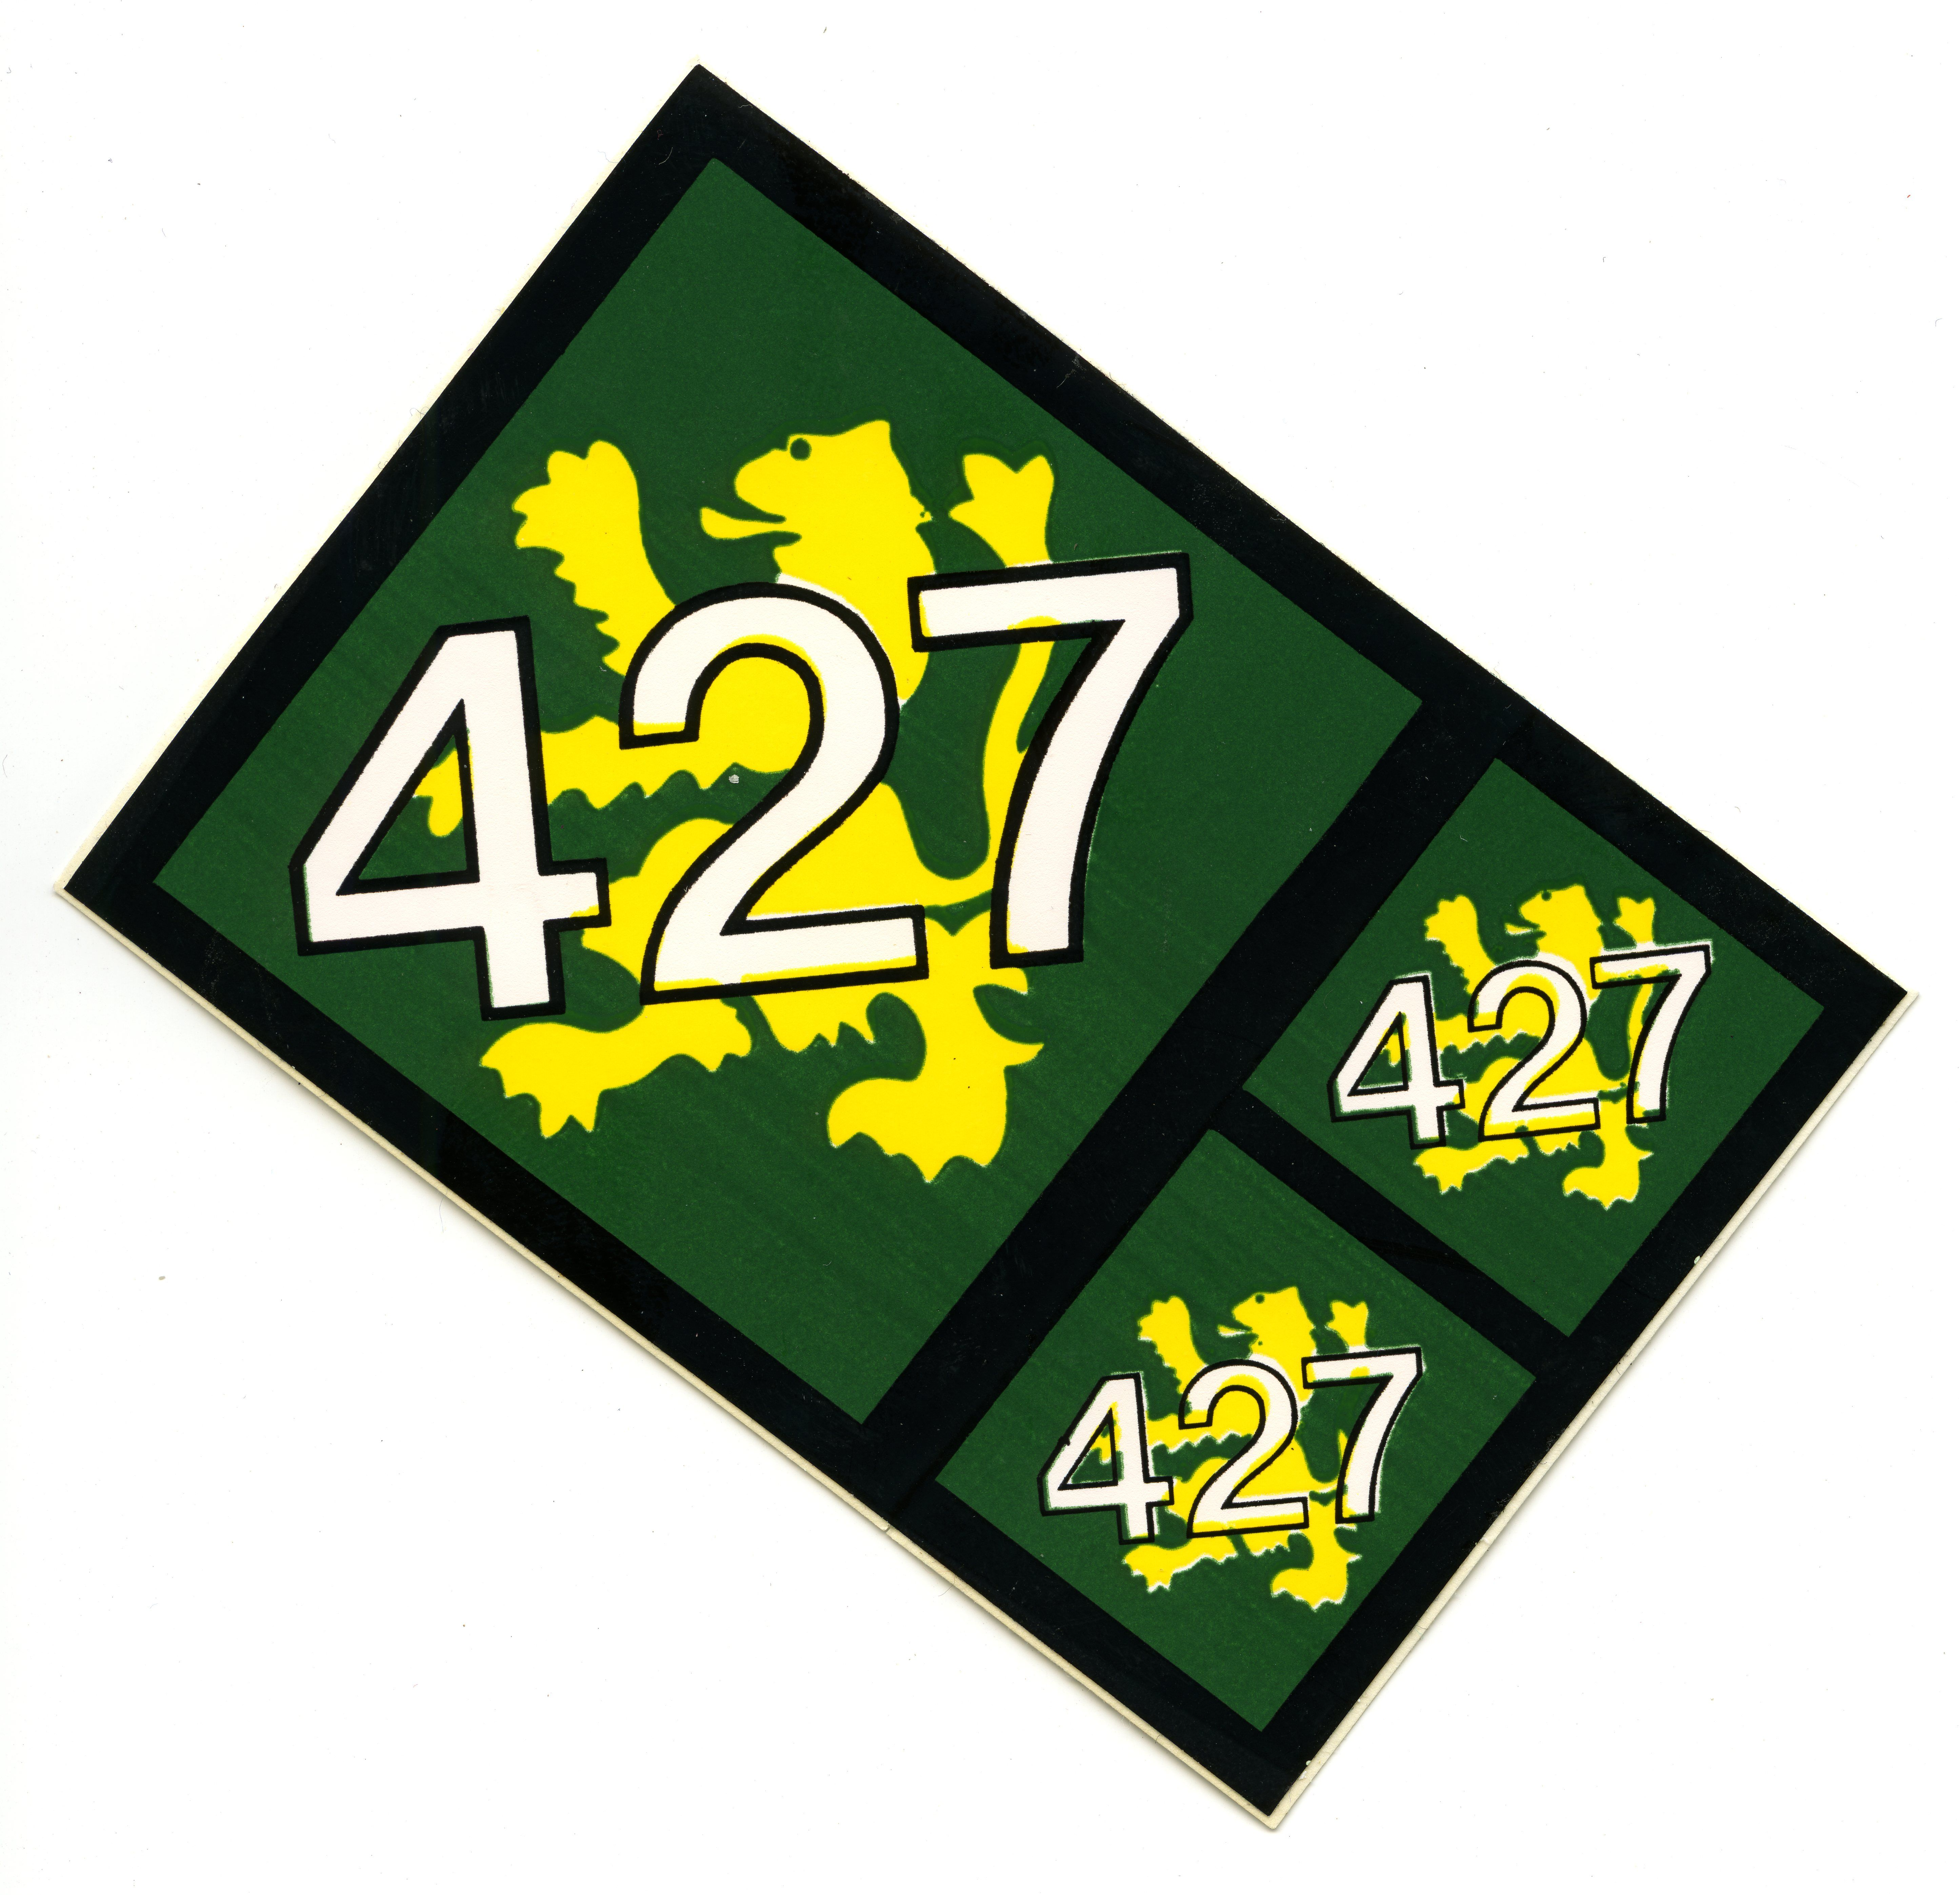 RCAF 427 Squadron Sticker Novelty, Novelty sign